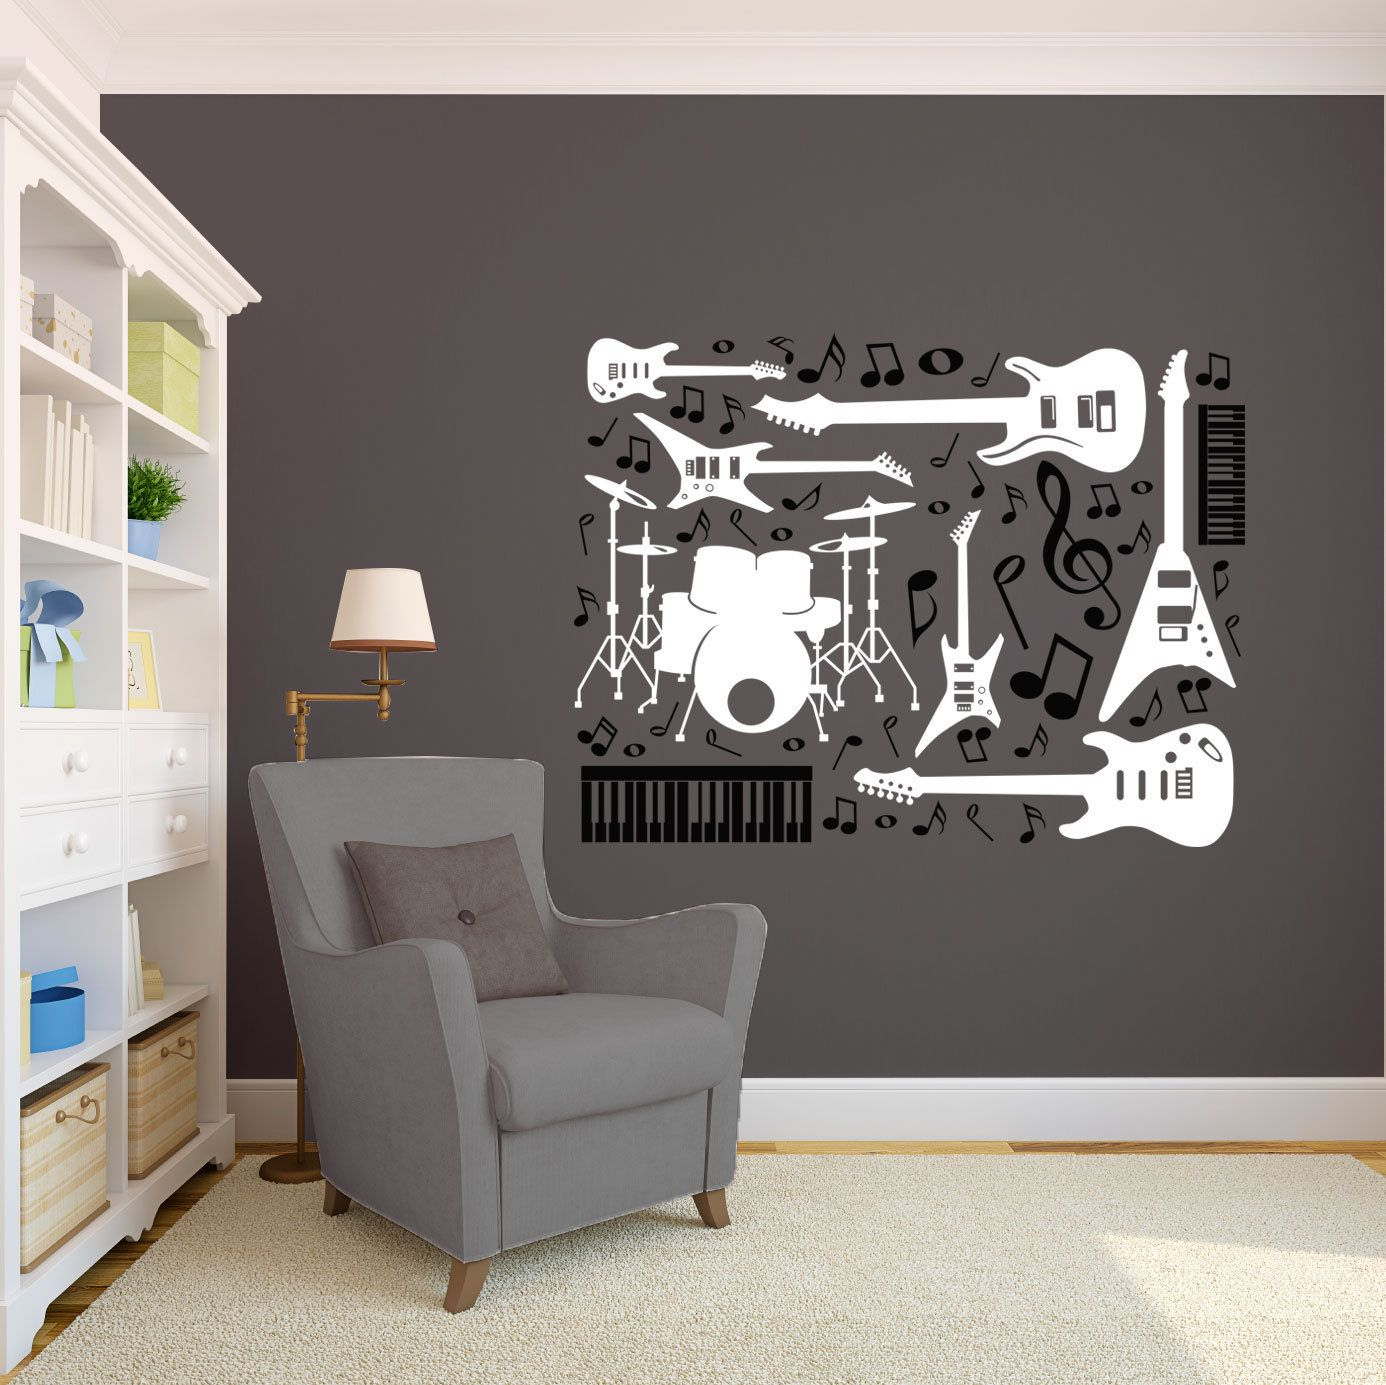 Drums Guitars Keyboards And Music Notes Collage Rock Star - Custom vinyl guitar stickers